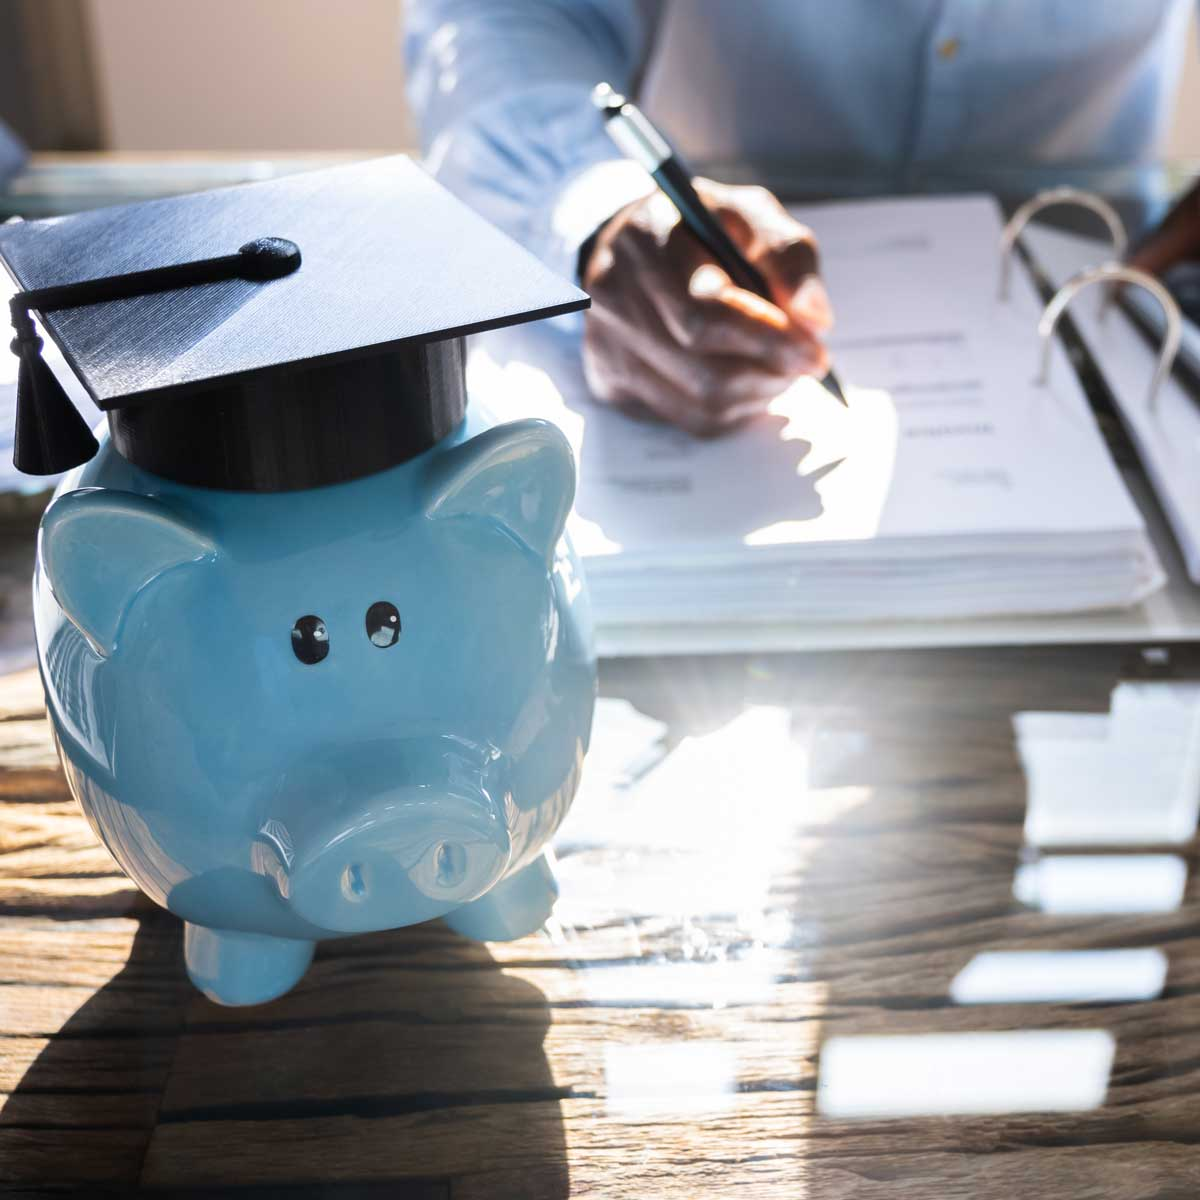 Student Loan. Accounting Advisor concept; image of a blue piggy bank with a graduation cap on it as the main focus with a businessman in the background calculating rates on a note pad